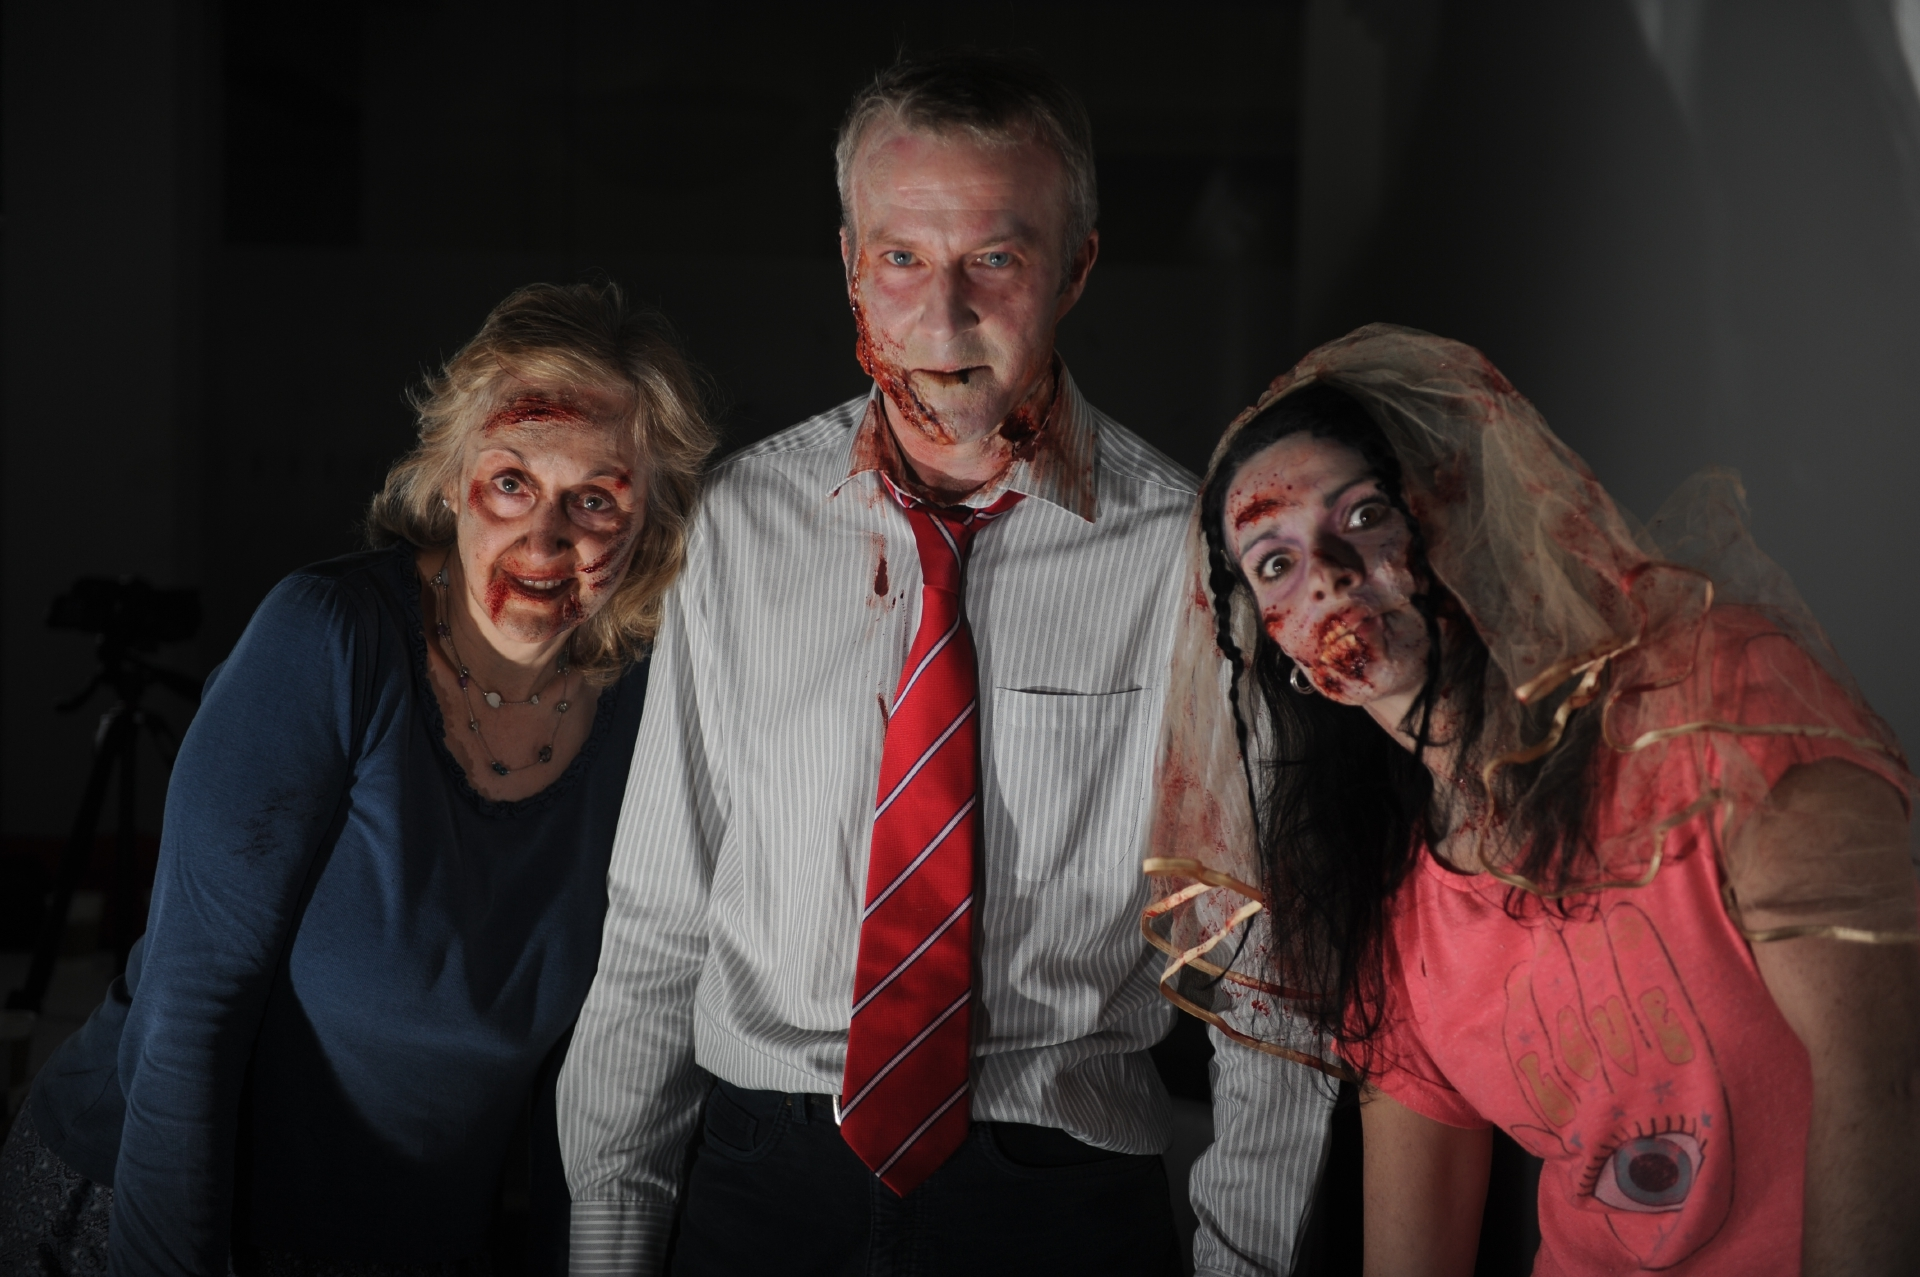 The Courier's Caroline Lindsay, Mike Alexander and Gayle Ritchie ready for their zombie wedding.